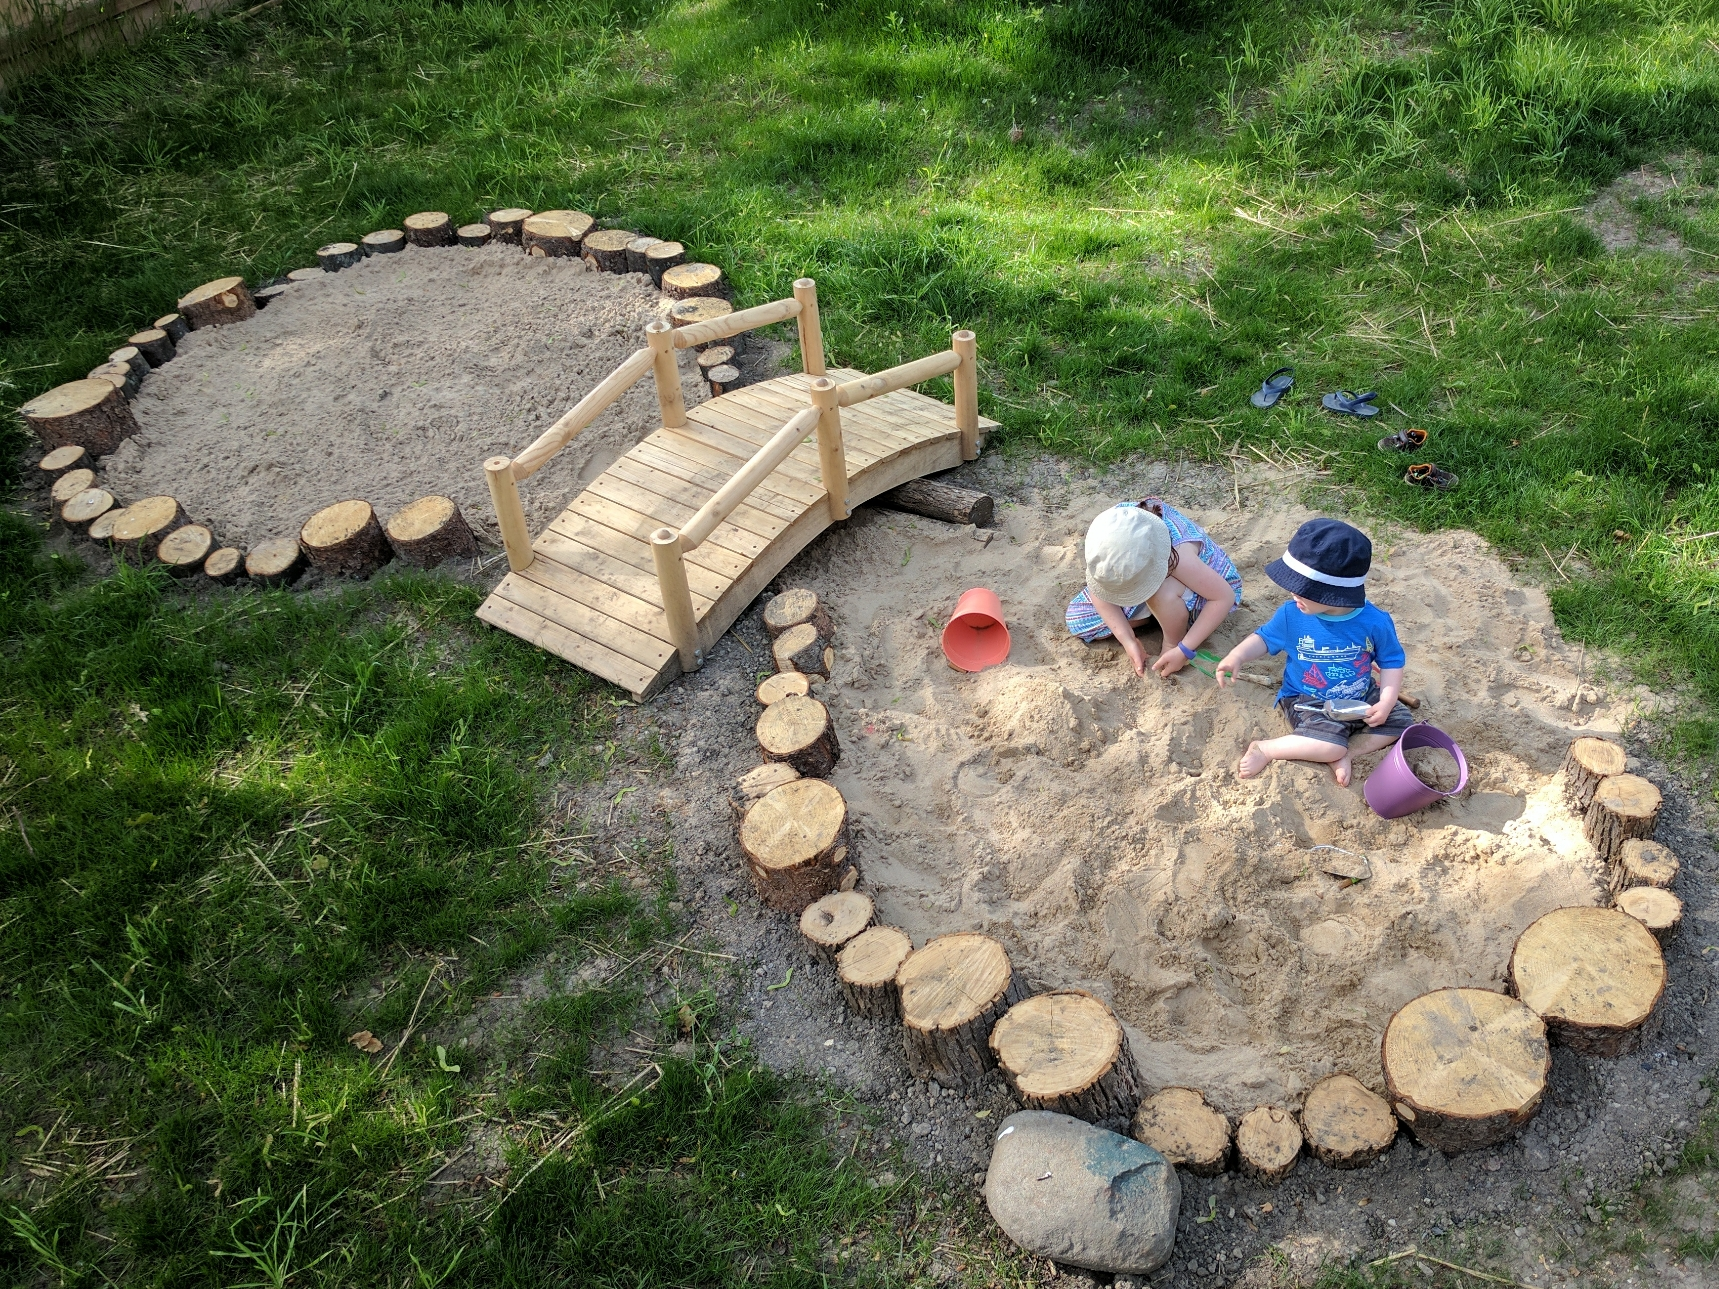 Breaking in the new sand area in the Nestling House yard.